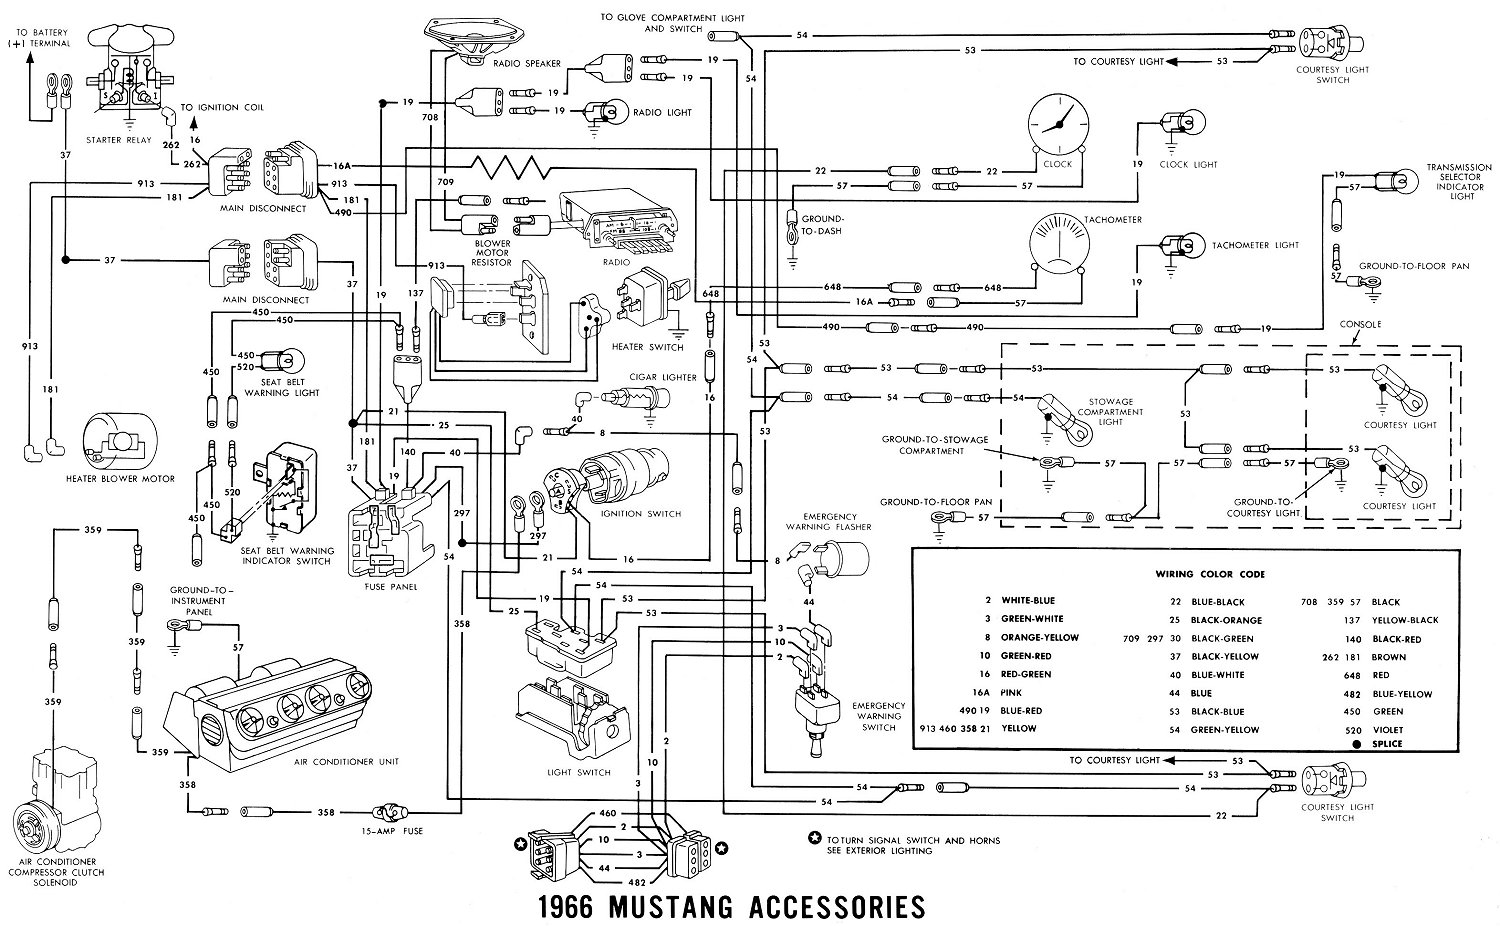 1966 Mustang Wiring Diagrams Average Joe Restoration Diagram For Mitsubishi Ac Units Schematic Air Conditioner